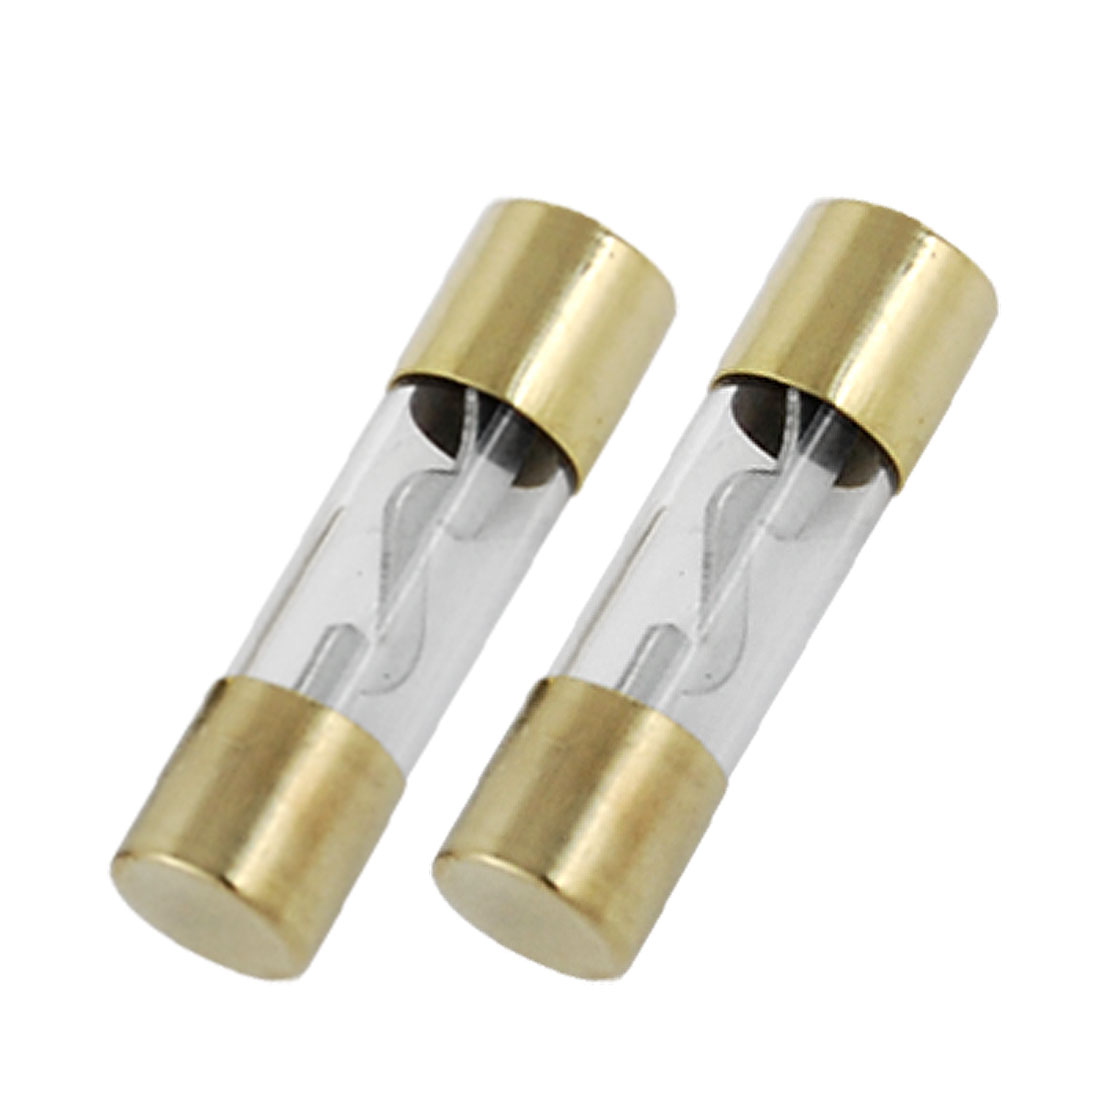 2 Pcs 60A Glass Tube Gold Tone Clear AGU Fuse for Car Audio